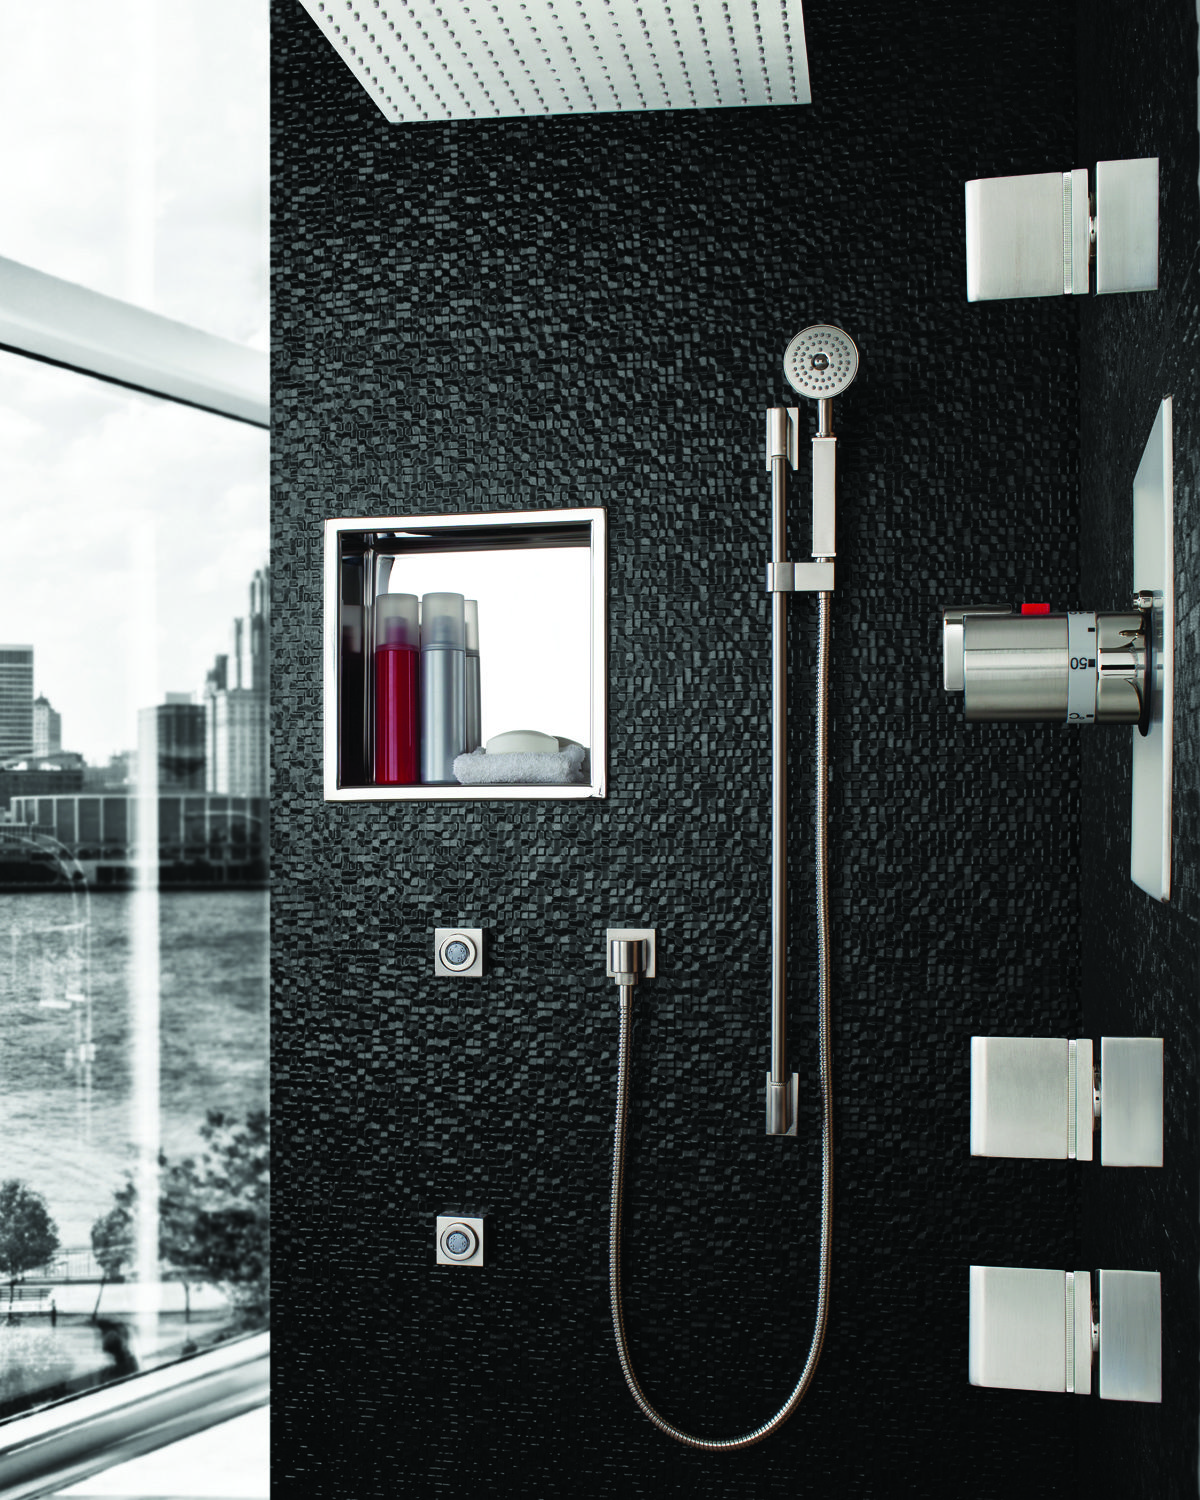 Stainless Steel niches by Rubinet available in two sizes (12x12 and ...